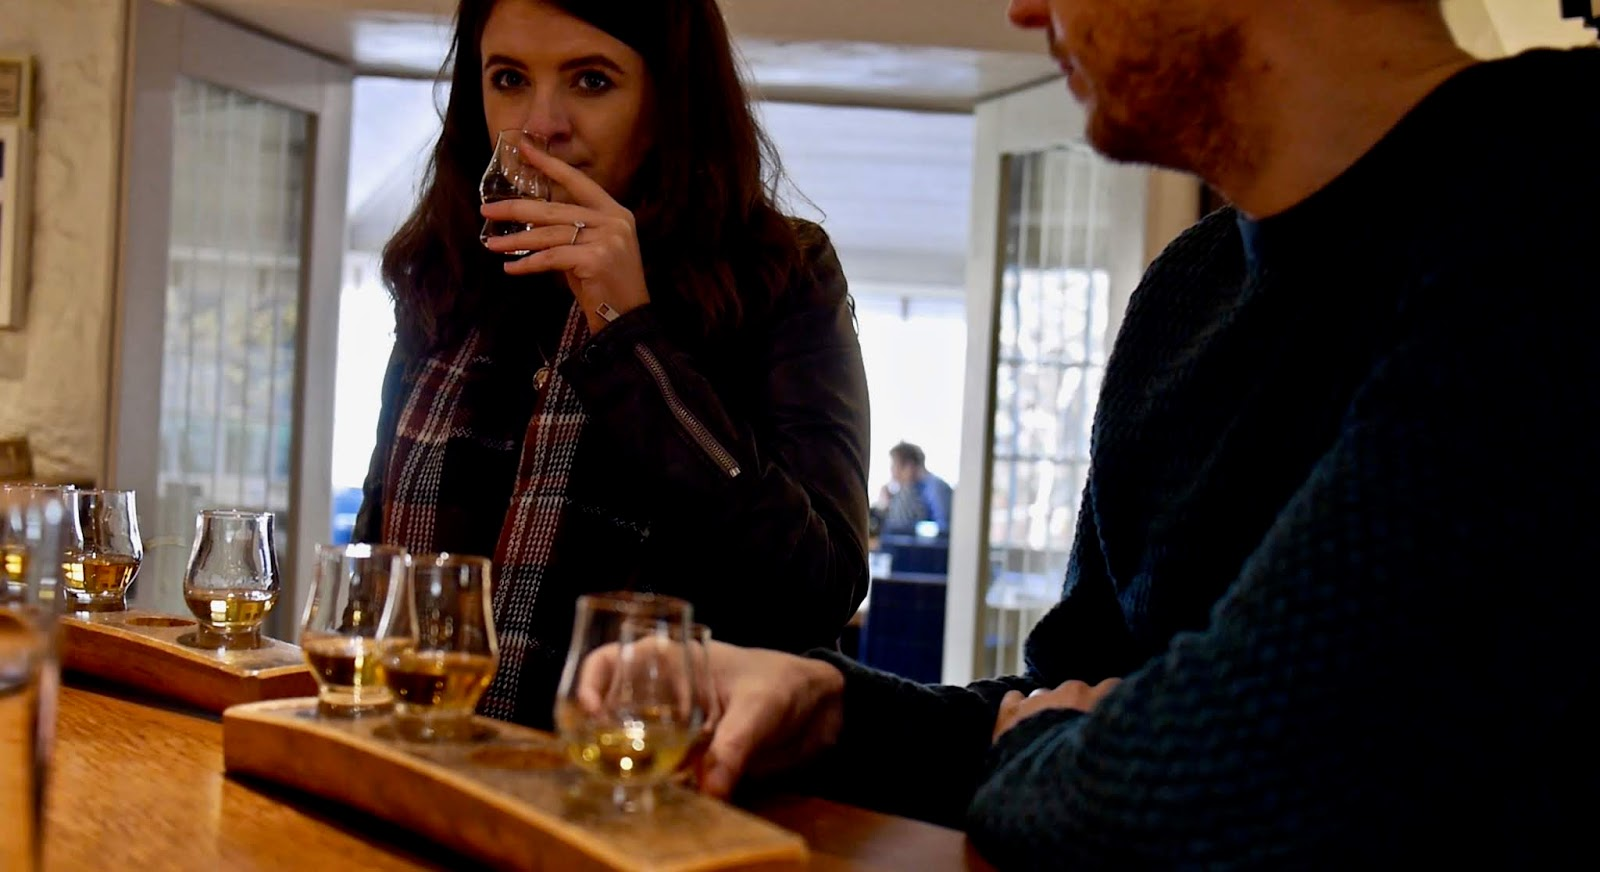 whisky tasting, The Famous Grouse Experience at Glenturret Distillery